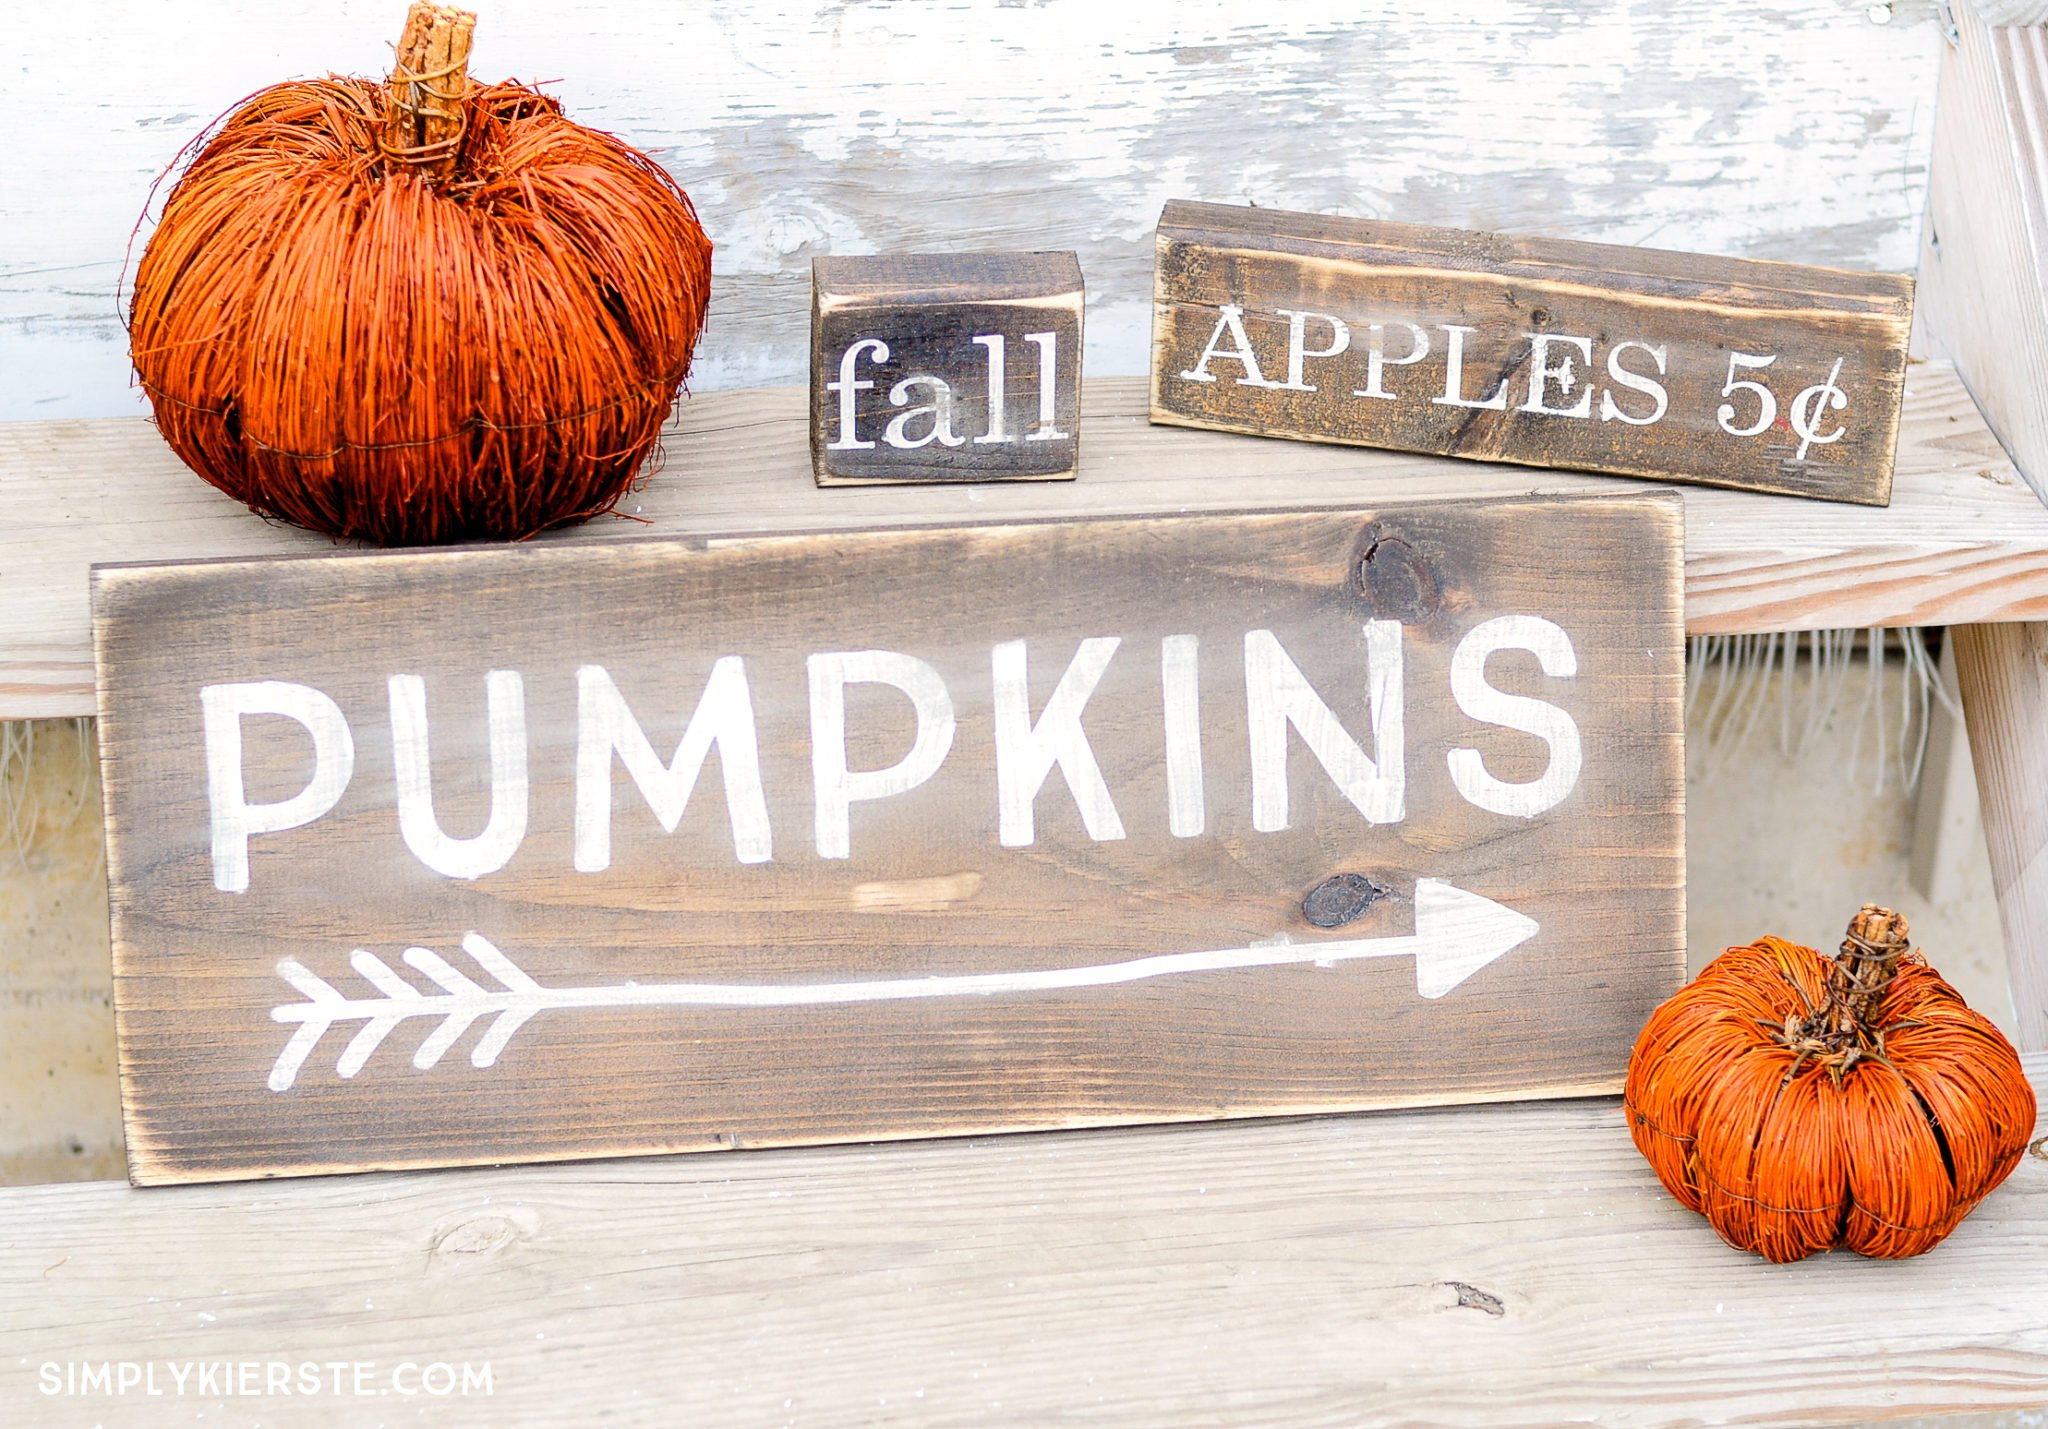 Farmhouse Style Fall Wood Signs| Free Silhouette Cut File | oldsaltfarm.com